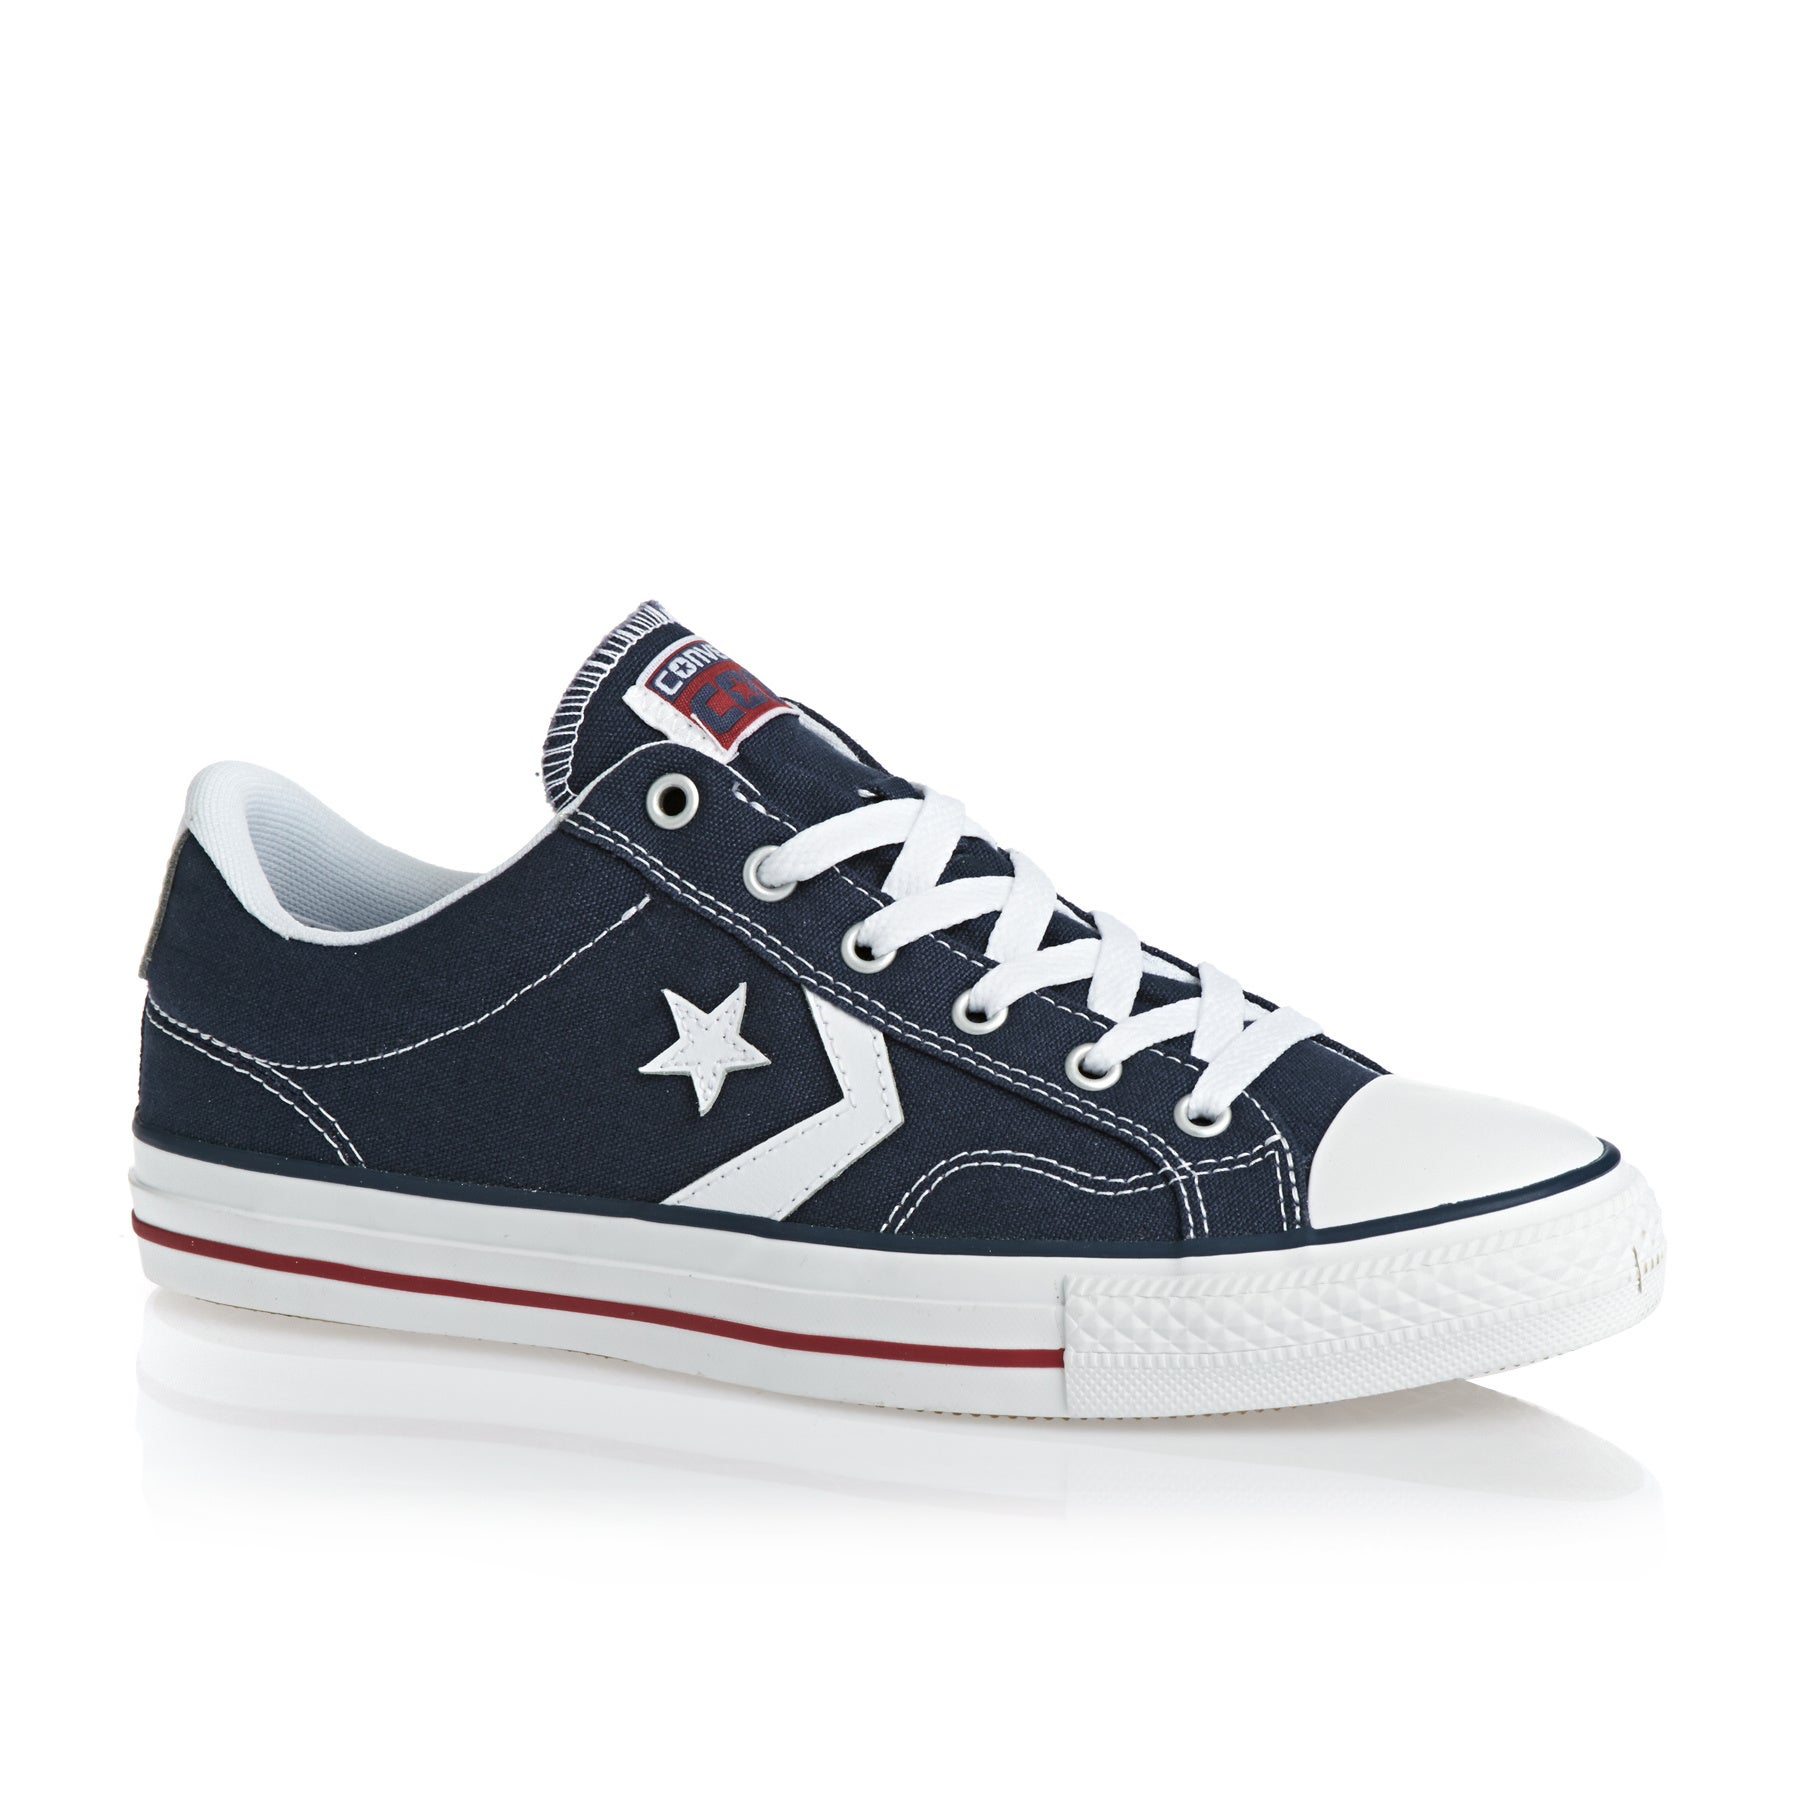 88cb8566df32 Converse CONS Remastered Star Player OX Shoes